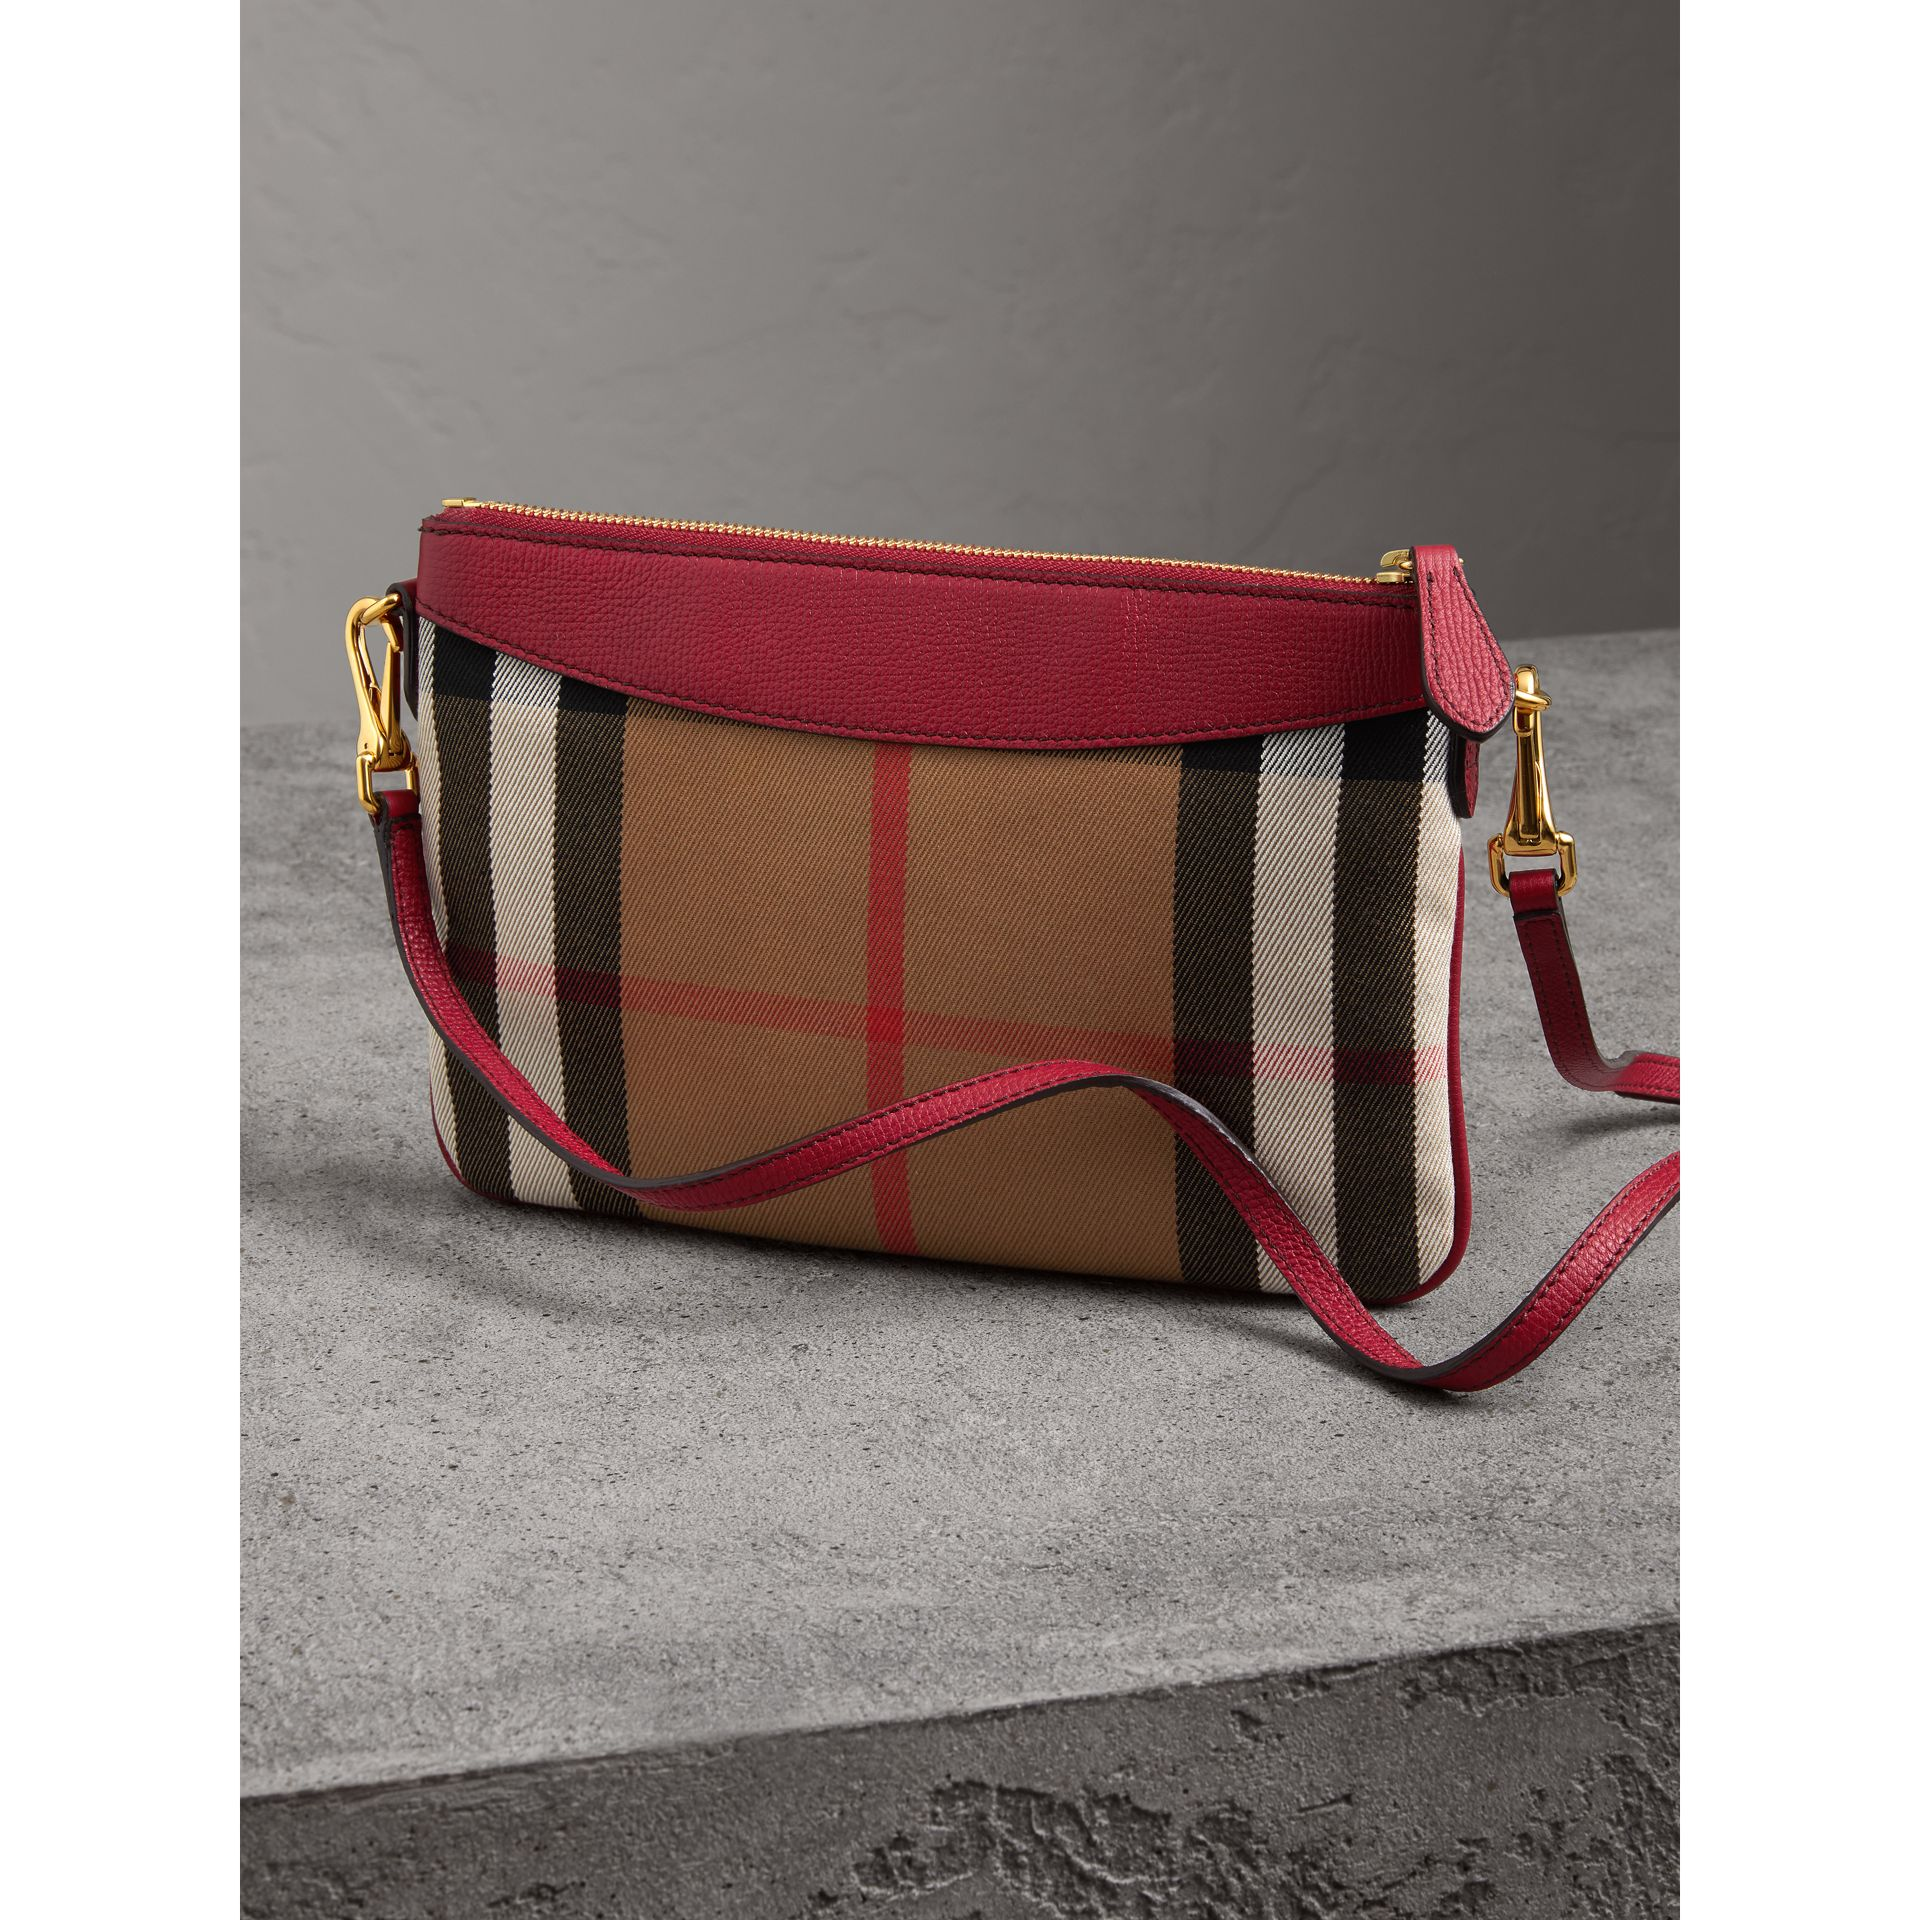 House Check and Leather Clutch Bag in Military Red - Women | Burberry United States - gallery image 4